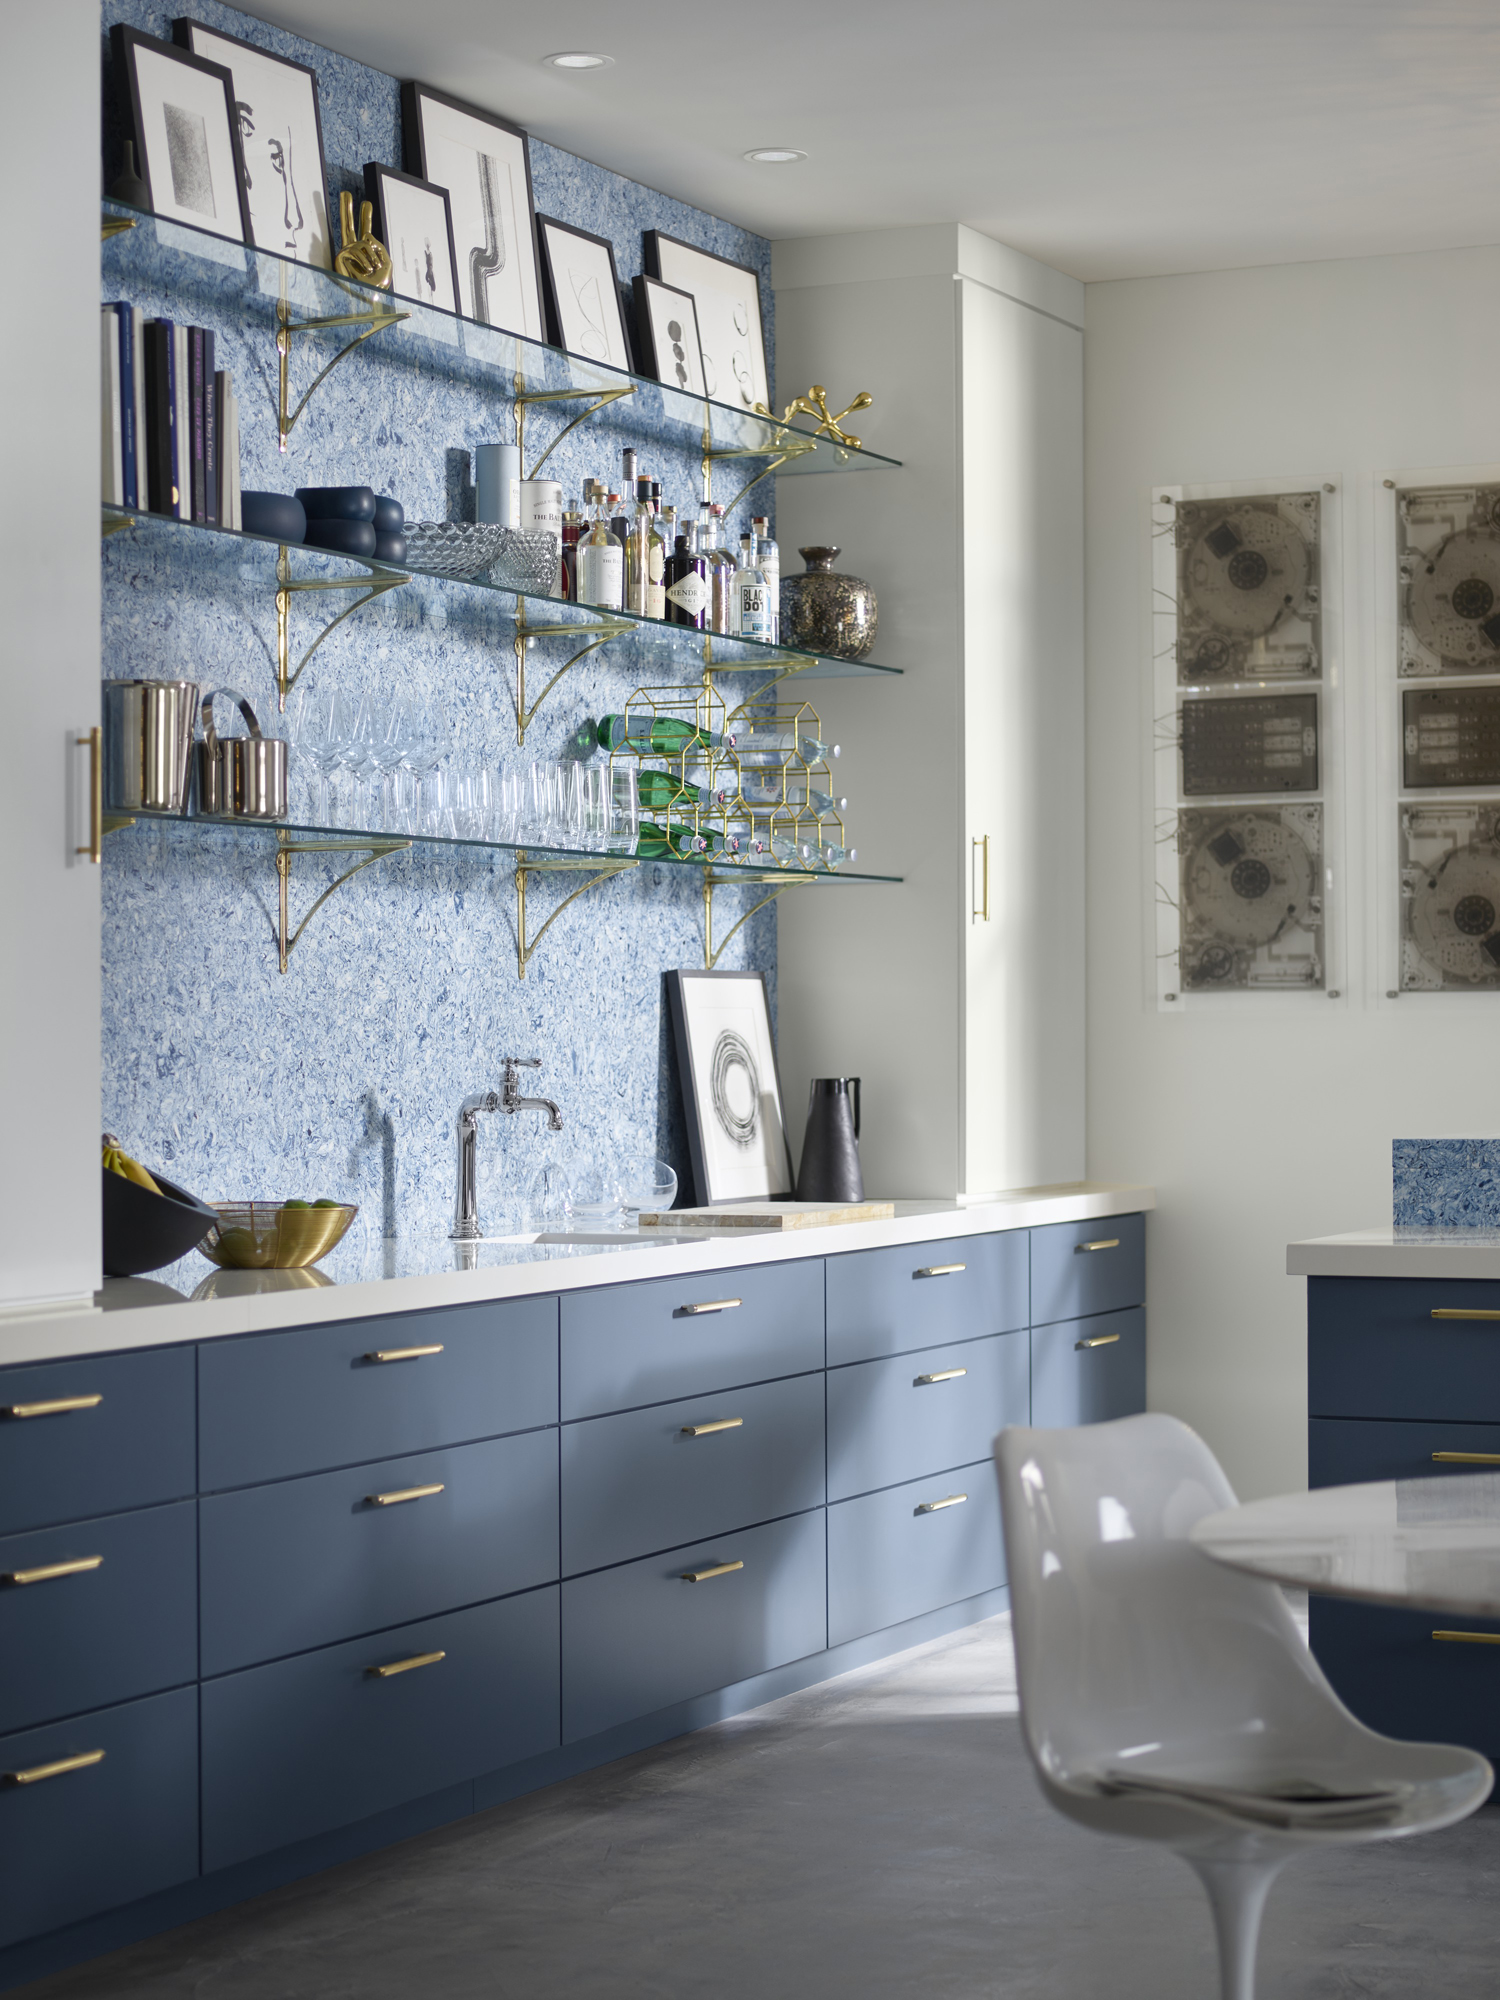 Strive® bar sink      Artifacts® Gentleman's bar faucet     White Zeus Extreme countertop     Albedo wall and breakfast counter     Open shelves can be all about functionality and easy access, plus they can act as a gallery wall, displaying your current favorites.